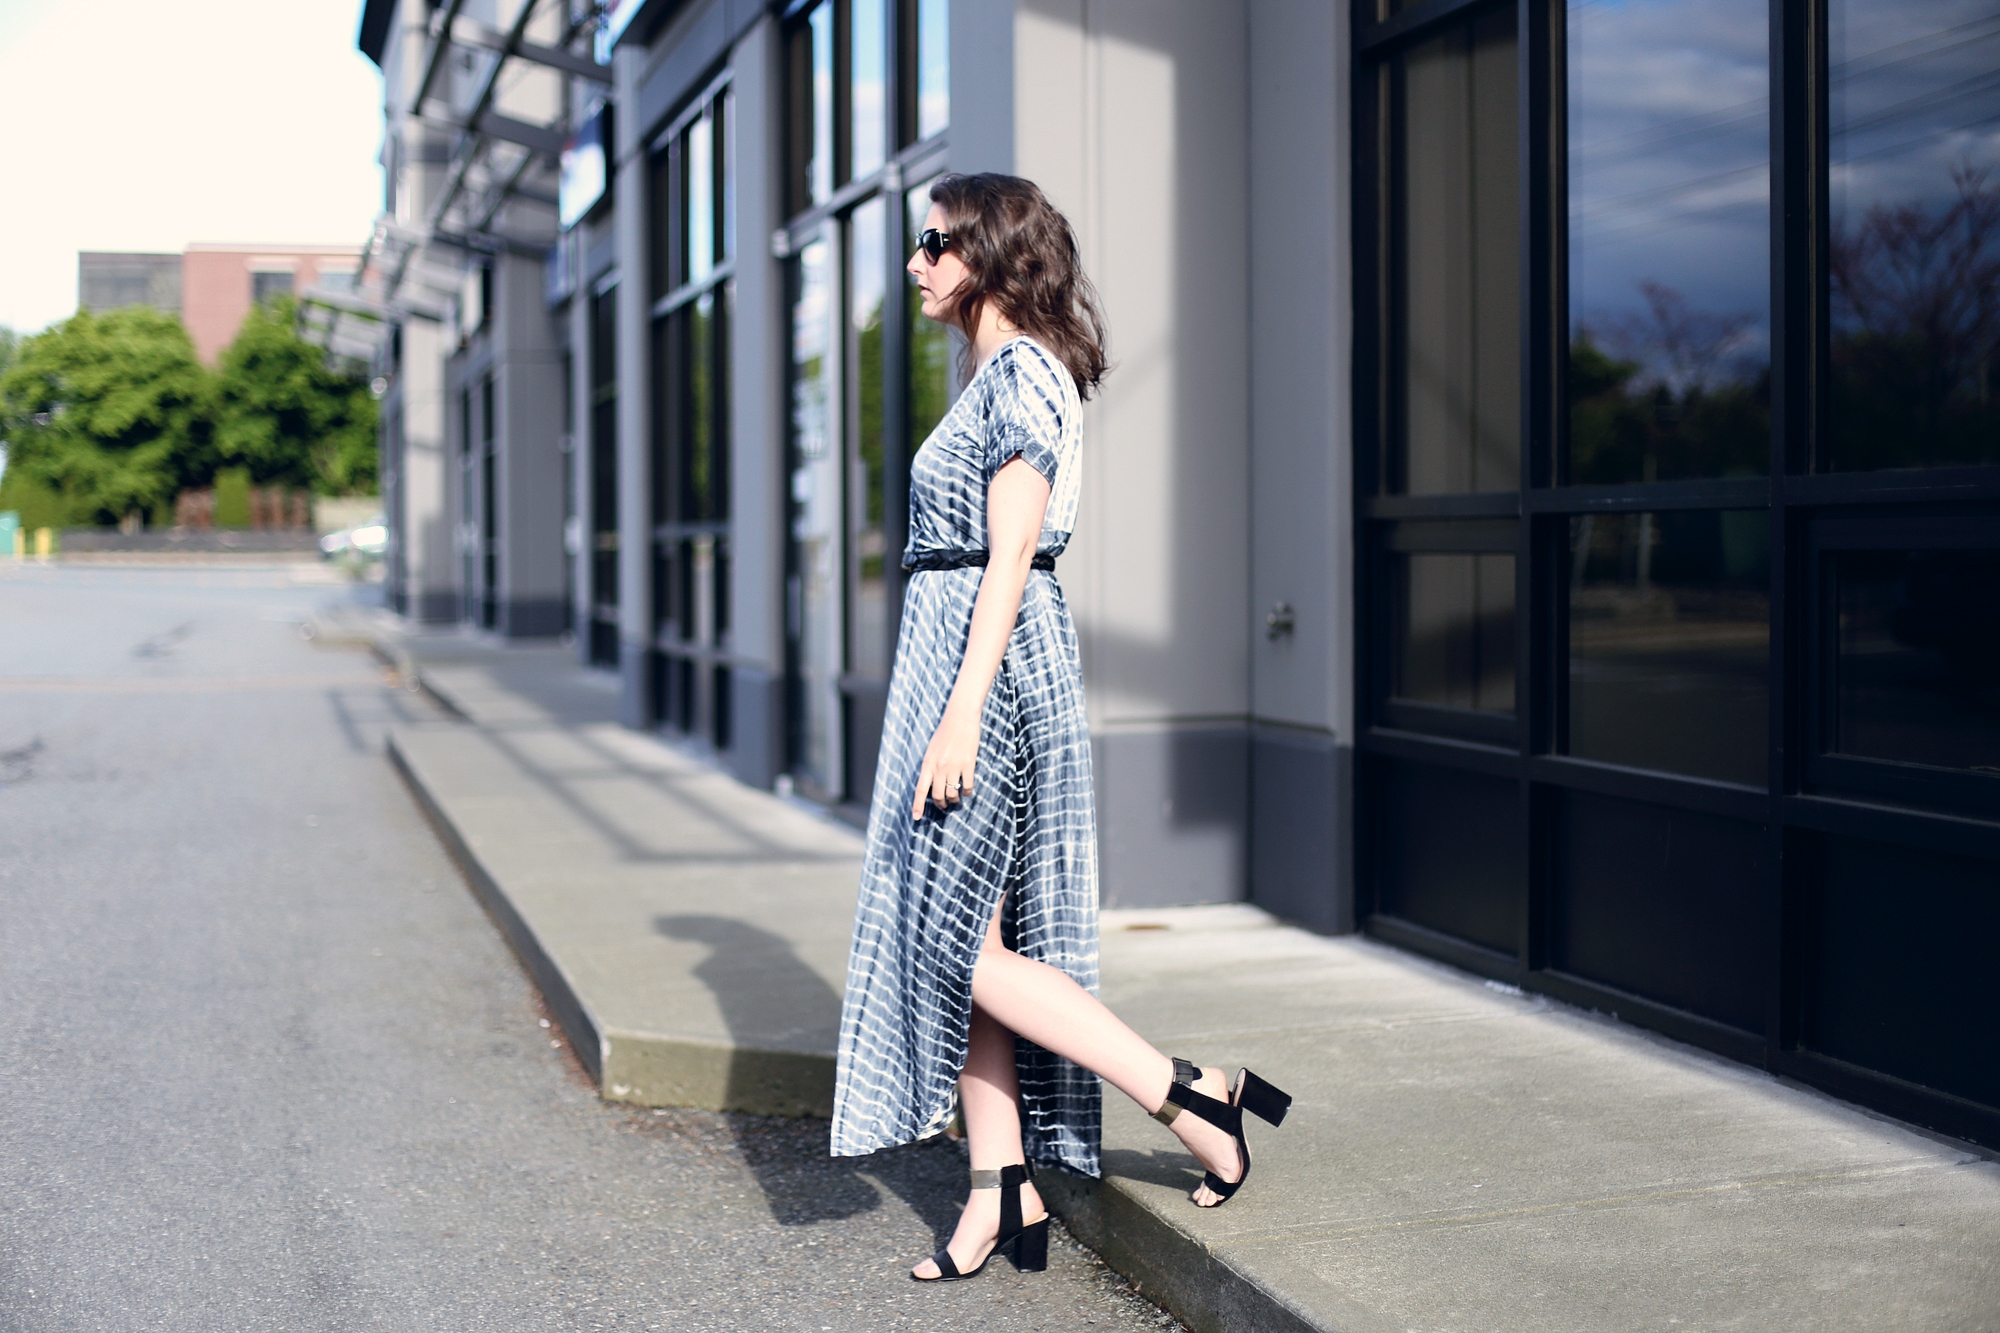 Love this maxi dress and heel look - so simple and minimal but so chic.